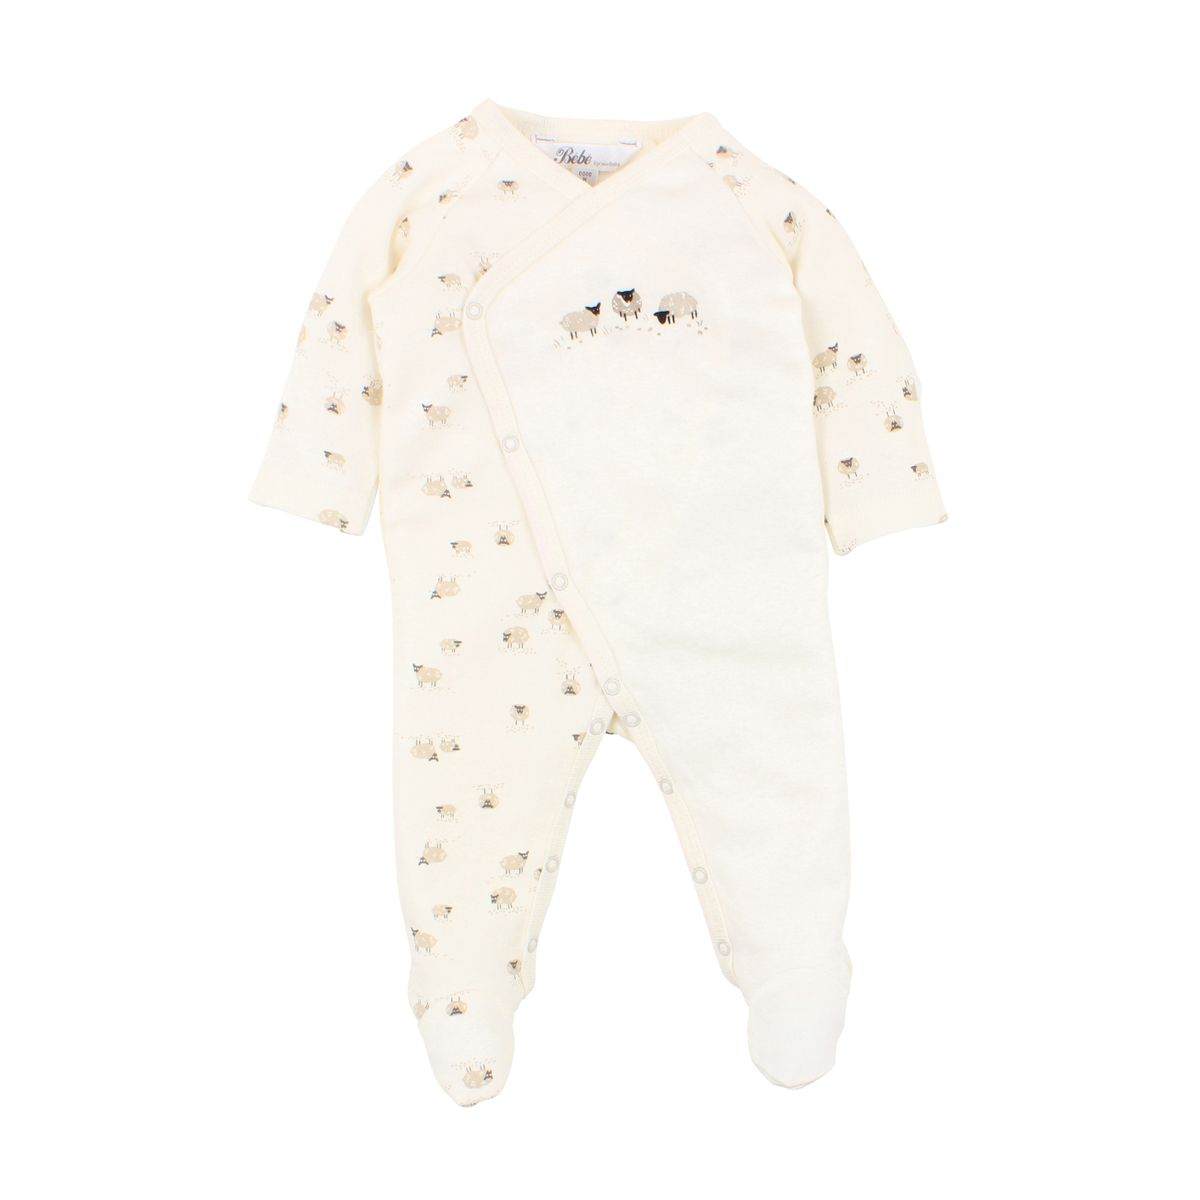 BÉBÉ by MINIHAHA - SHEEP Print Wrap Romper